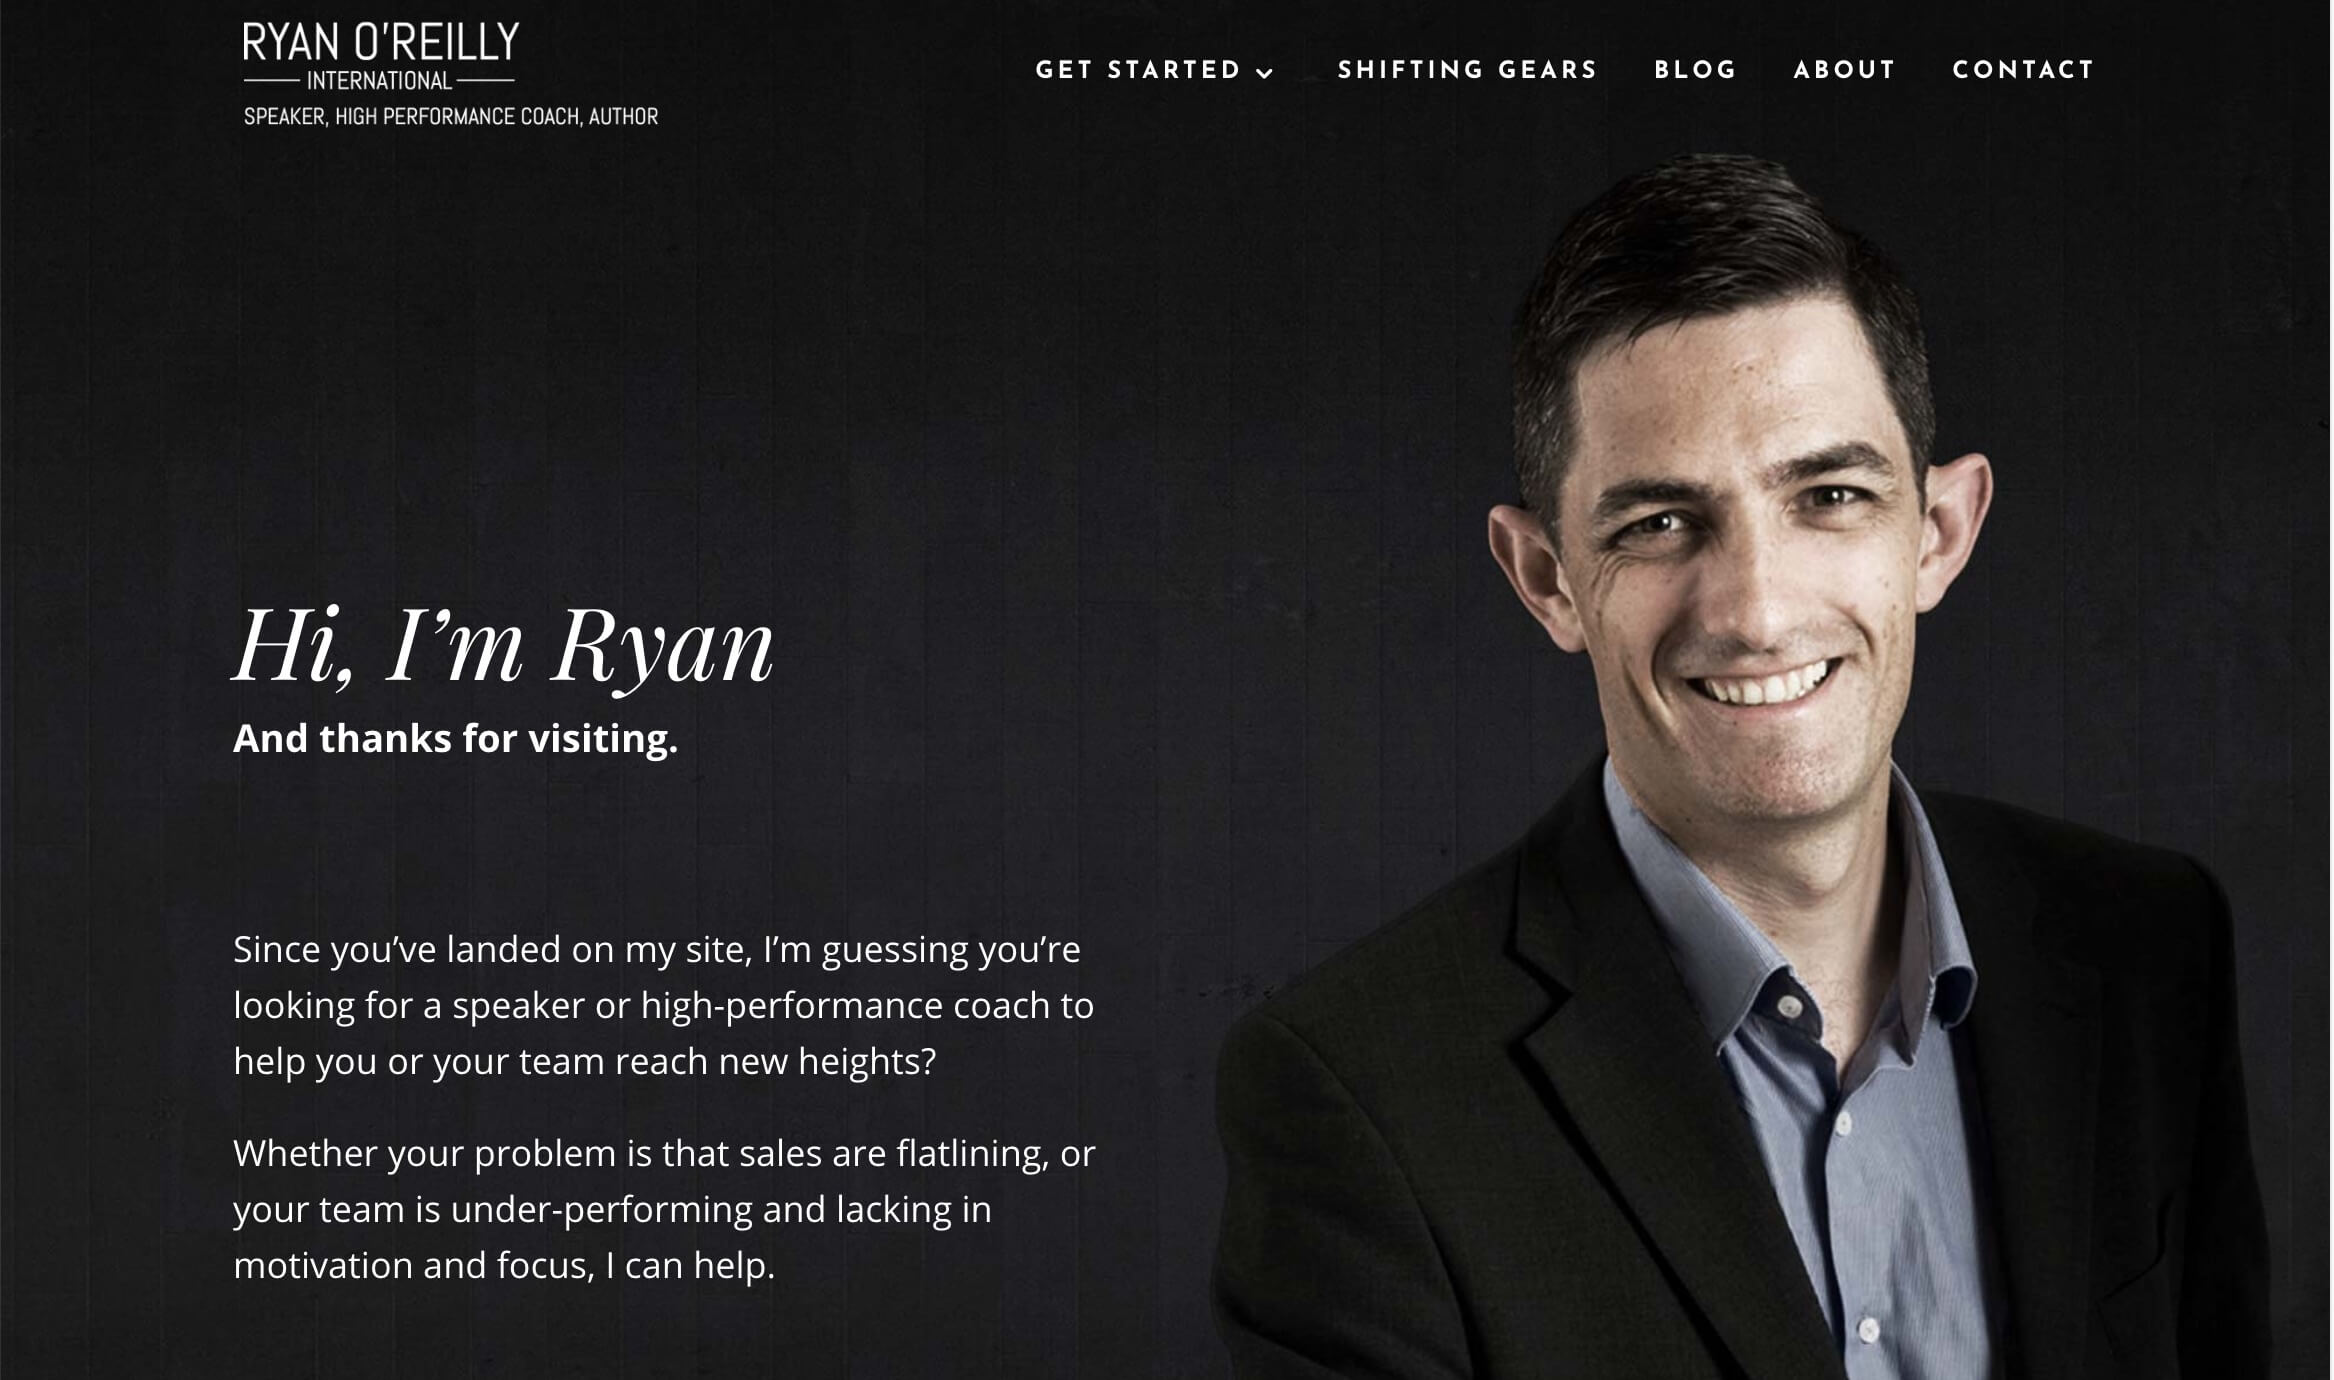 Ryan O'Reilly International – Ireland